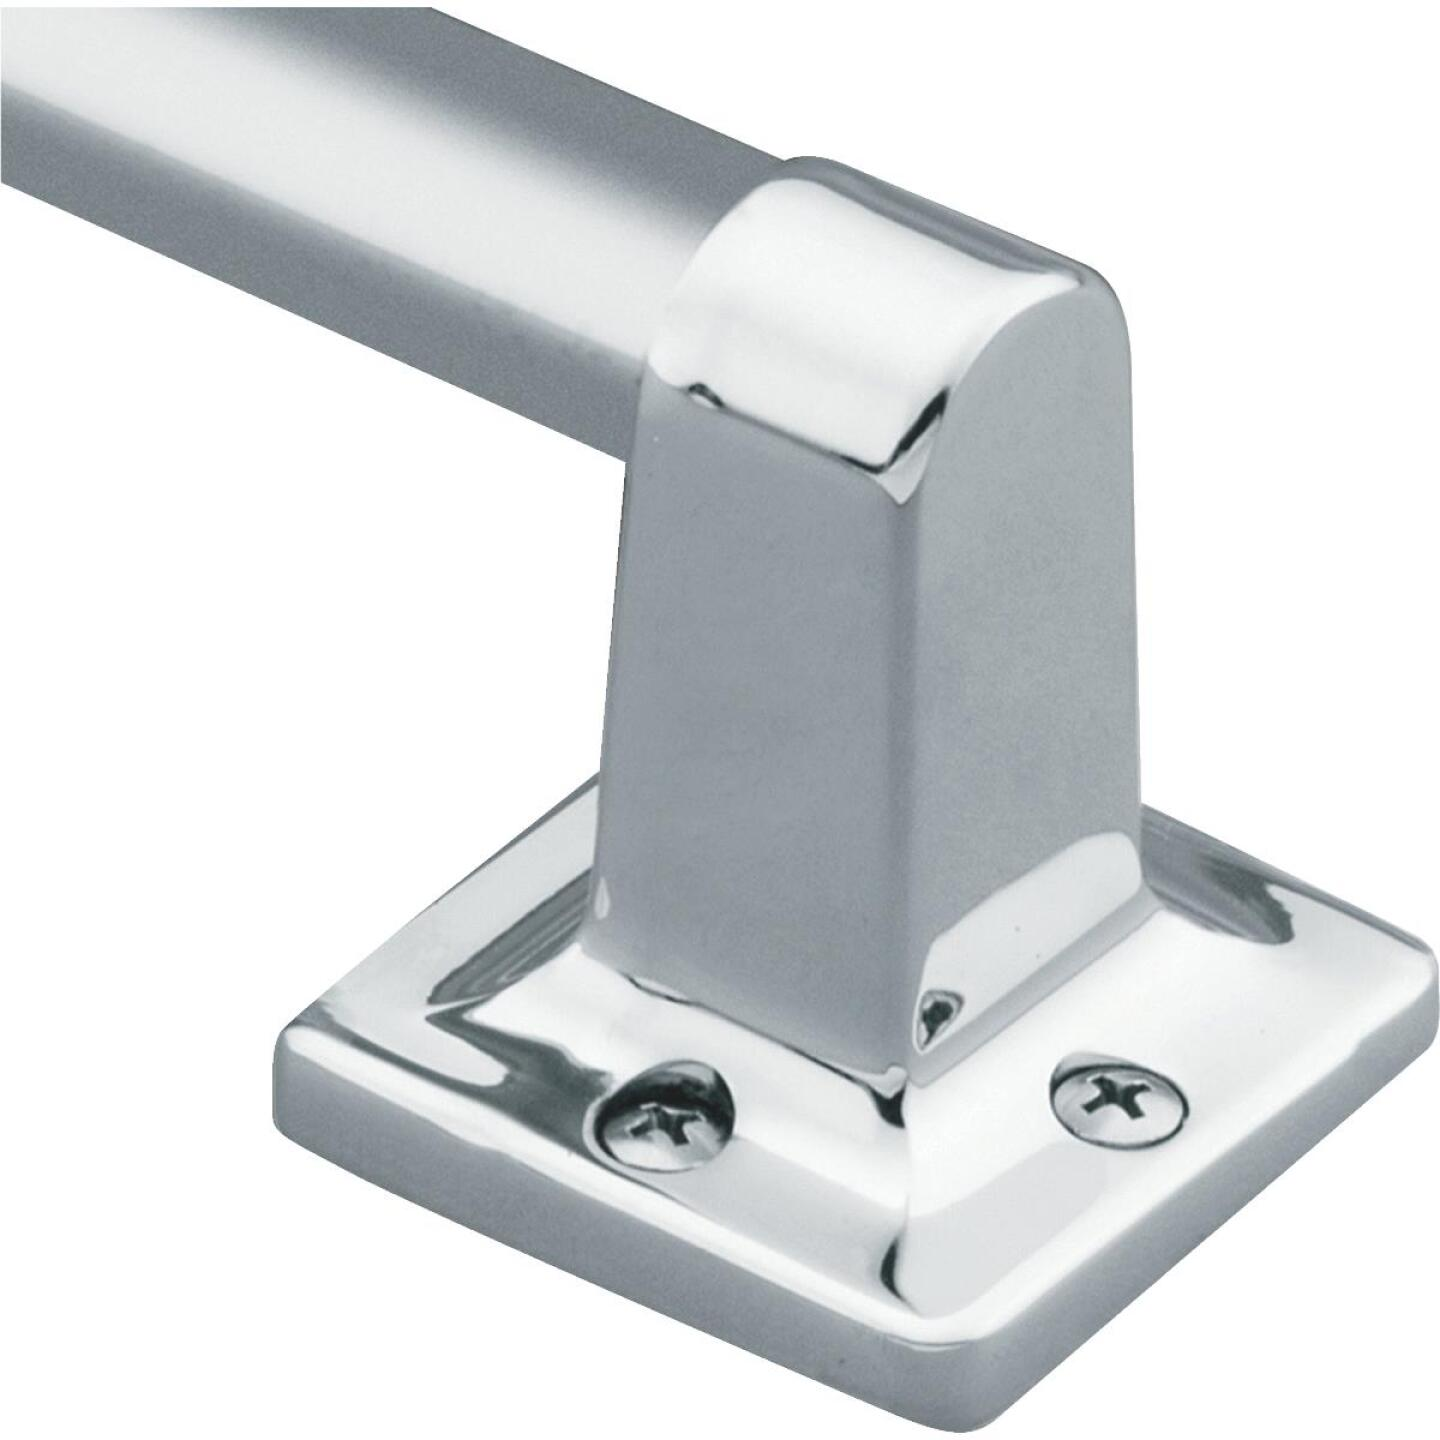 Moen Home Care 24 In. x 7/8 In. Exposed Screw Grab Bar, Chrome Image 1